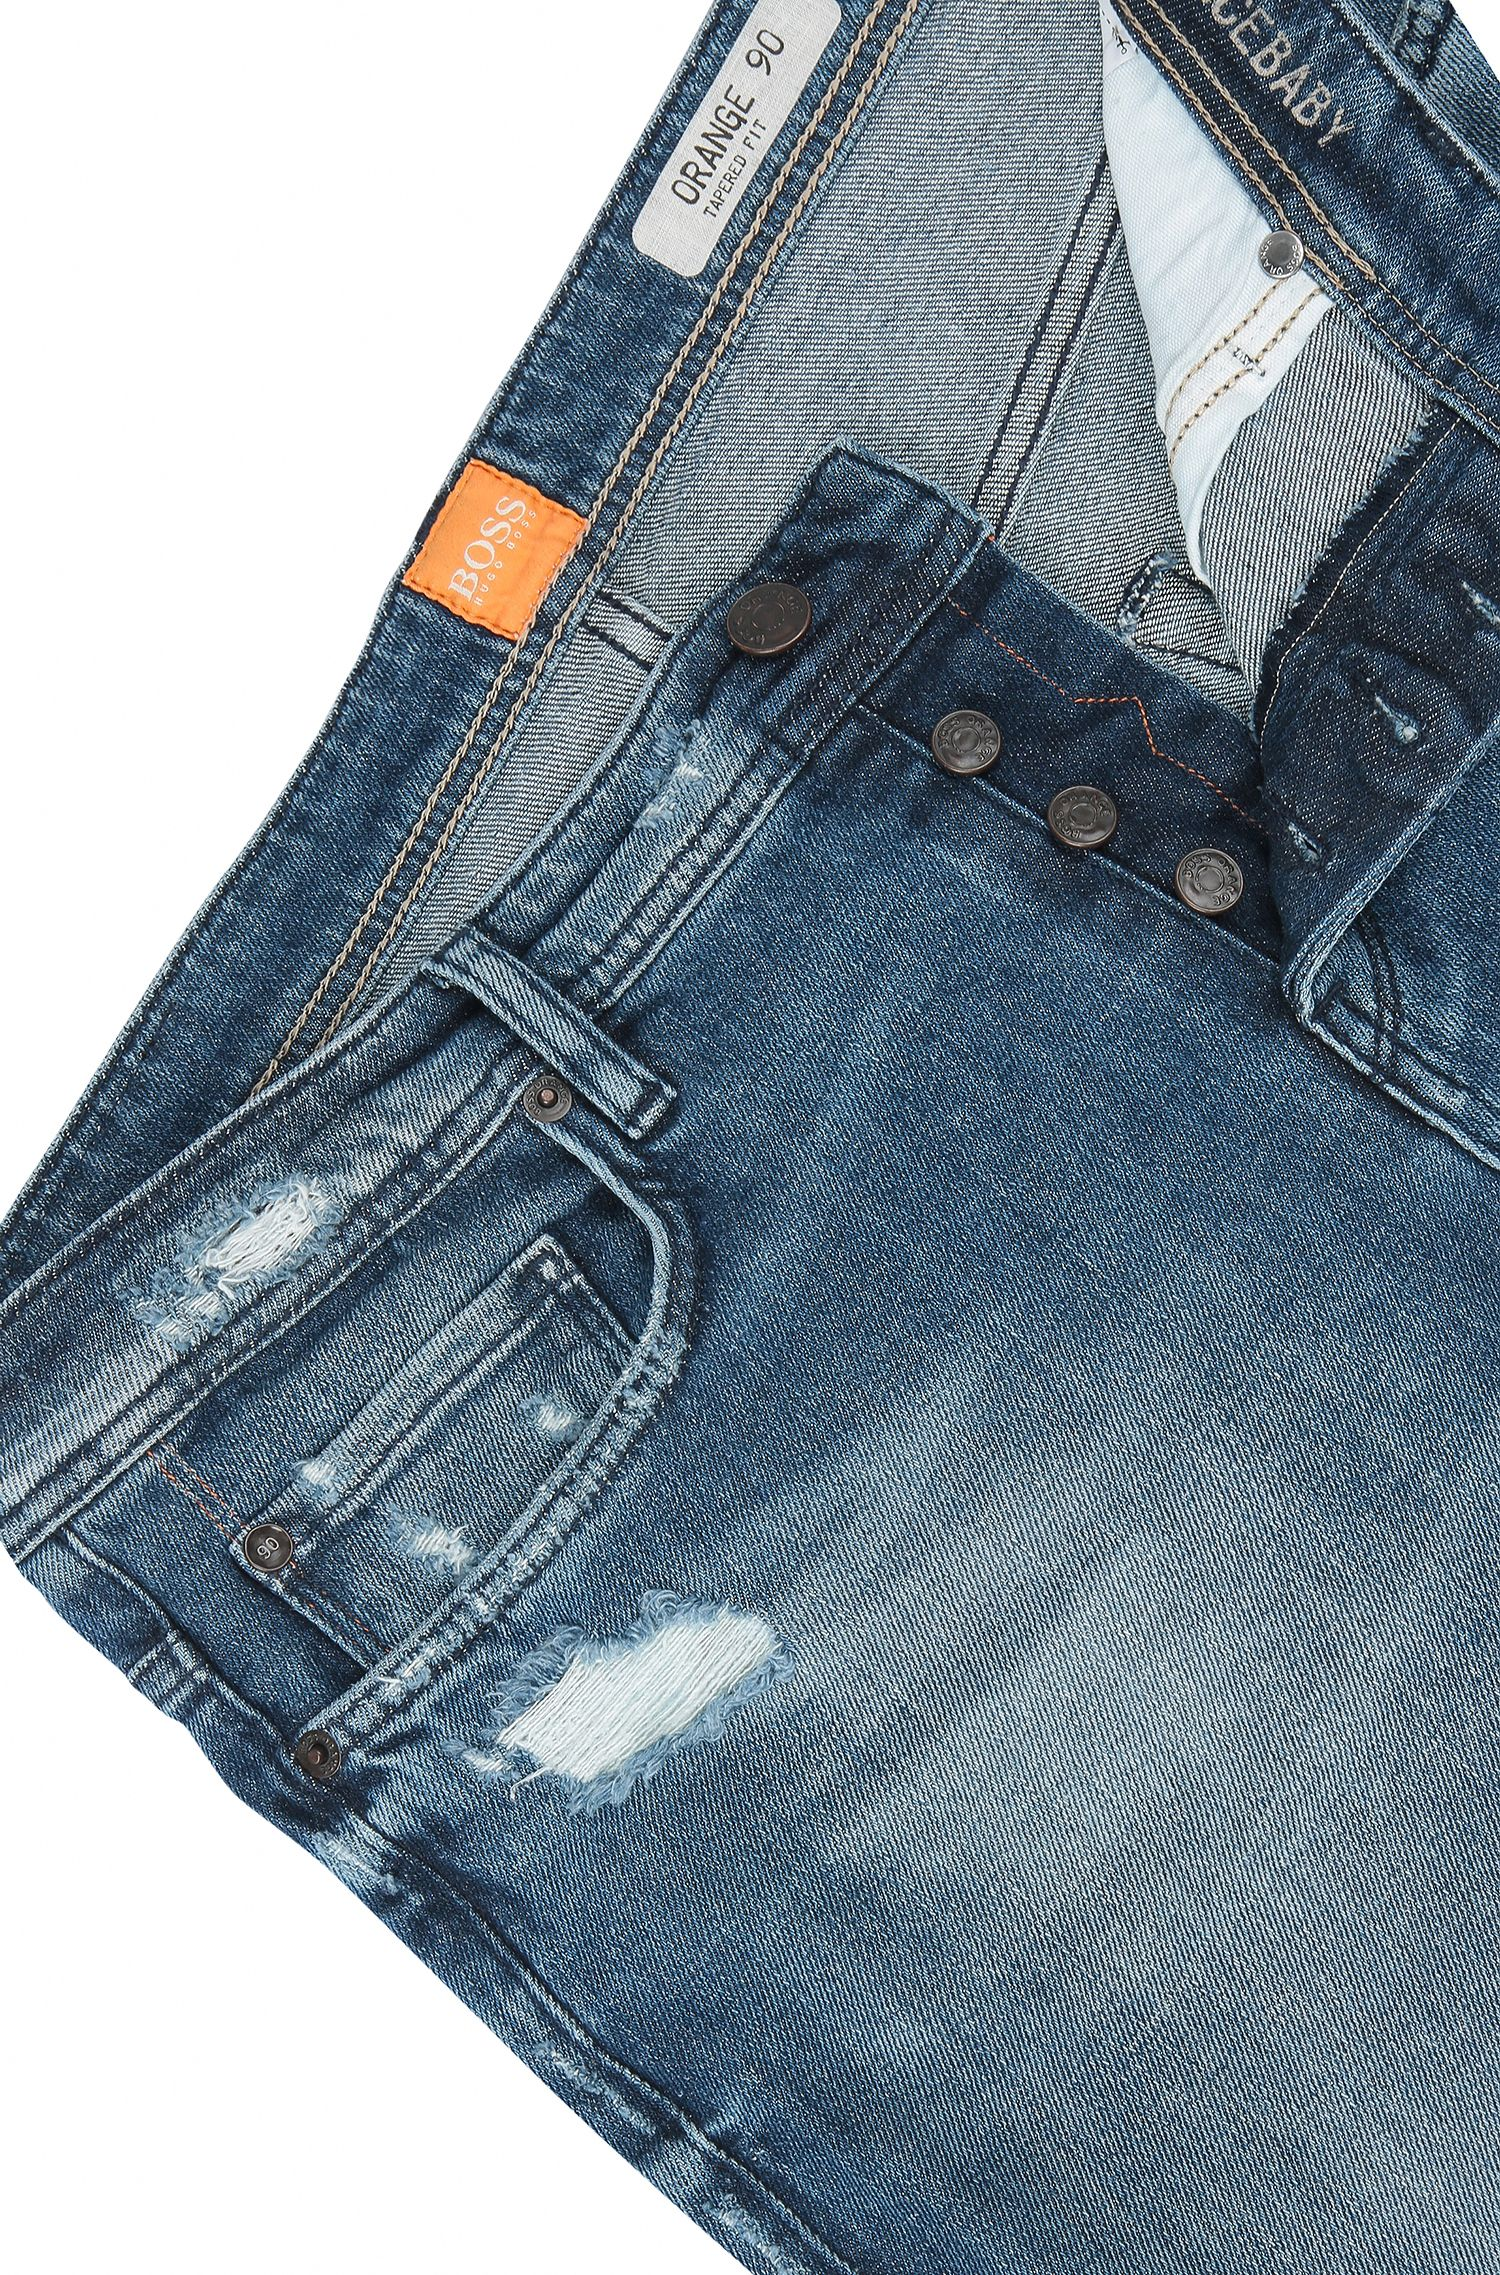 Stretch Cotton Jean, Tapered Fit | Orange90, Blue